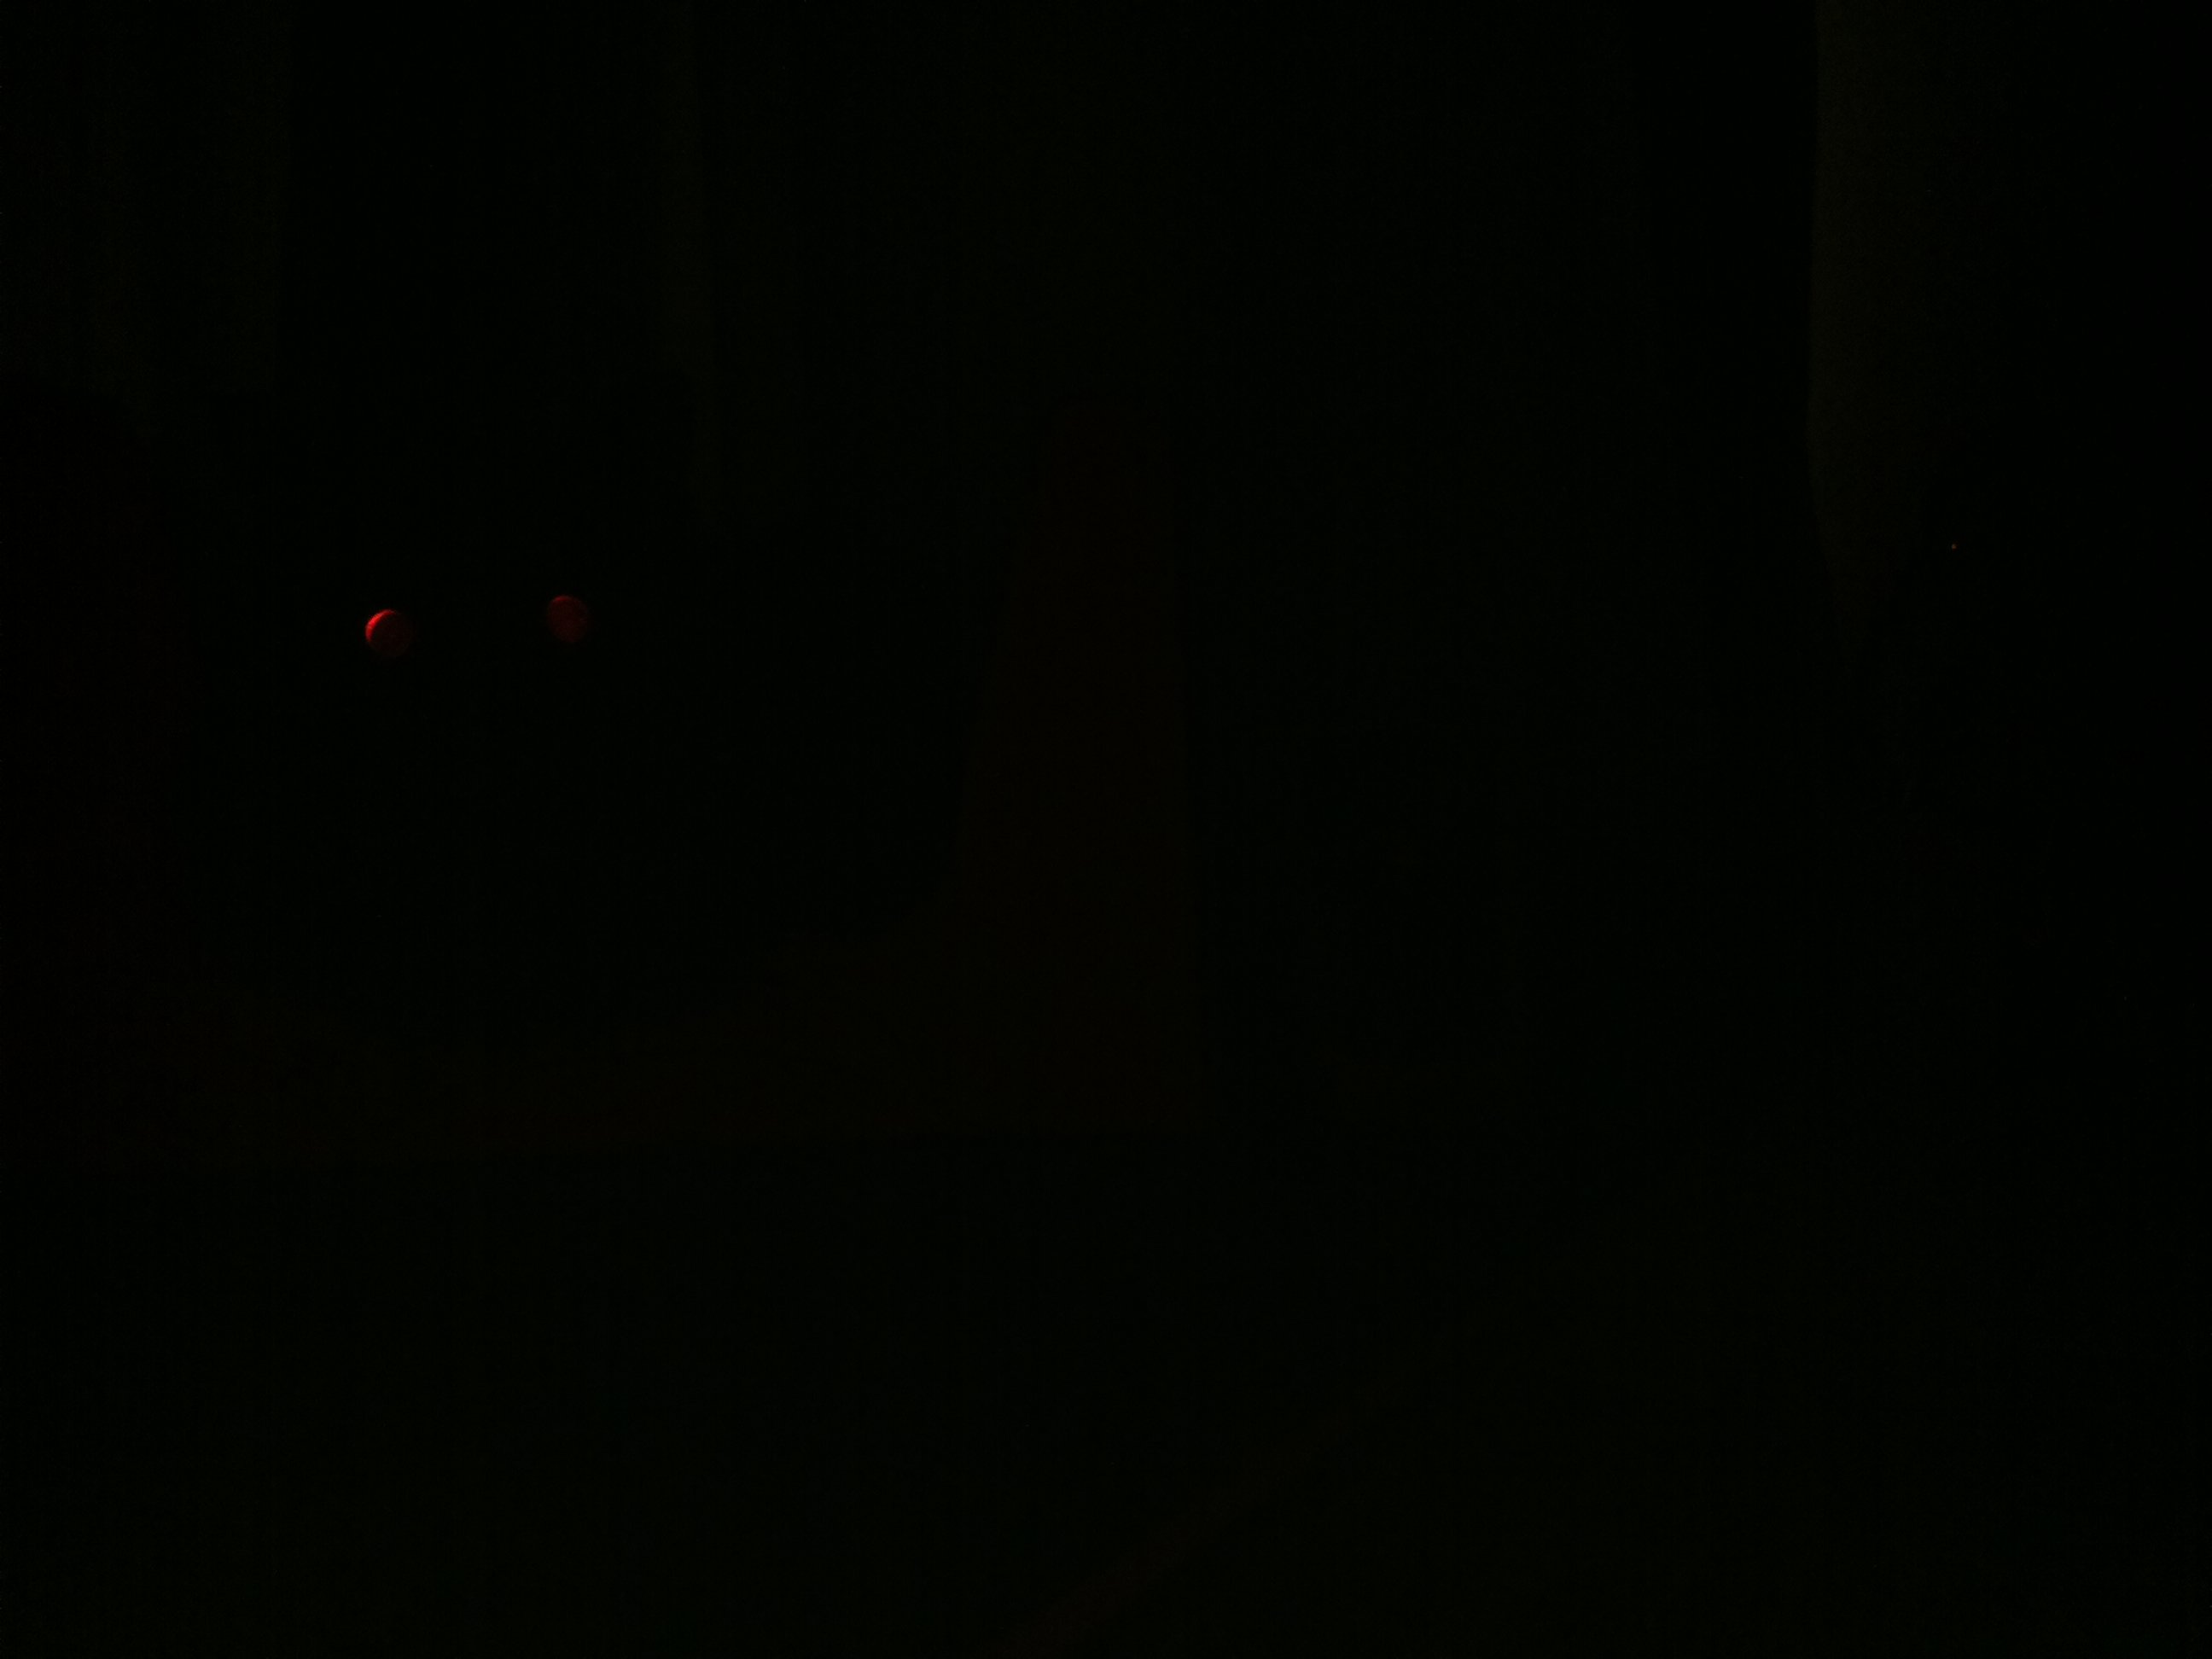 raspberry_pi_cam_test7.jpg